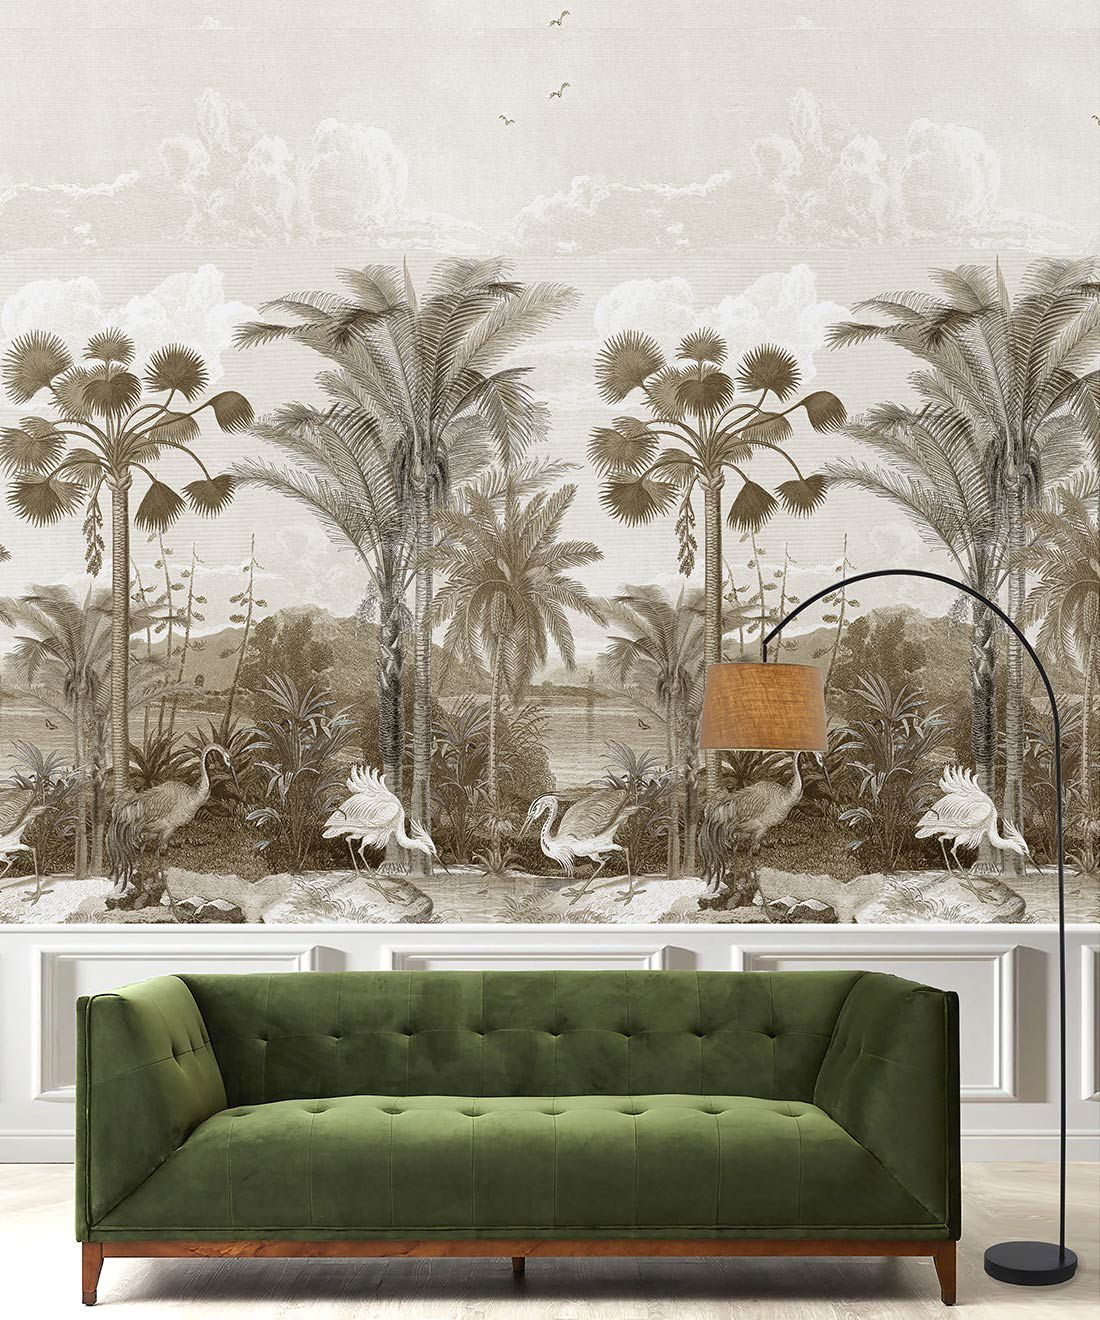 Indian Subcontinent Wallpaper Mural •Bethany Linz • Palm Tree Mural • Sepia • Insitu